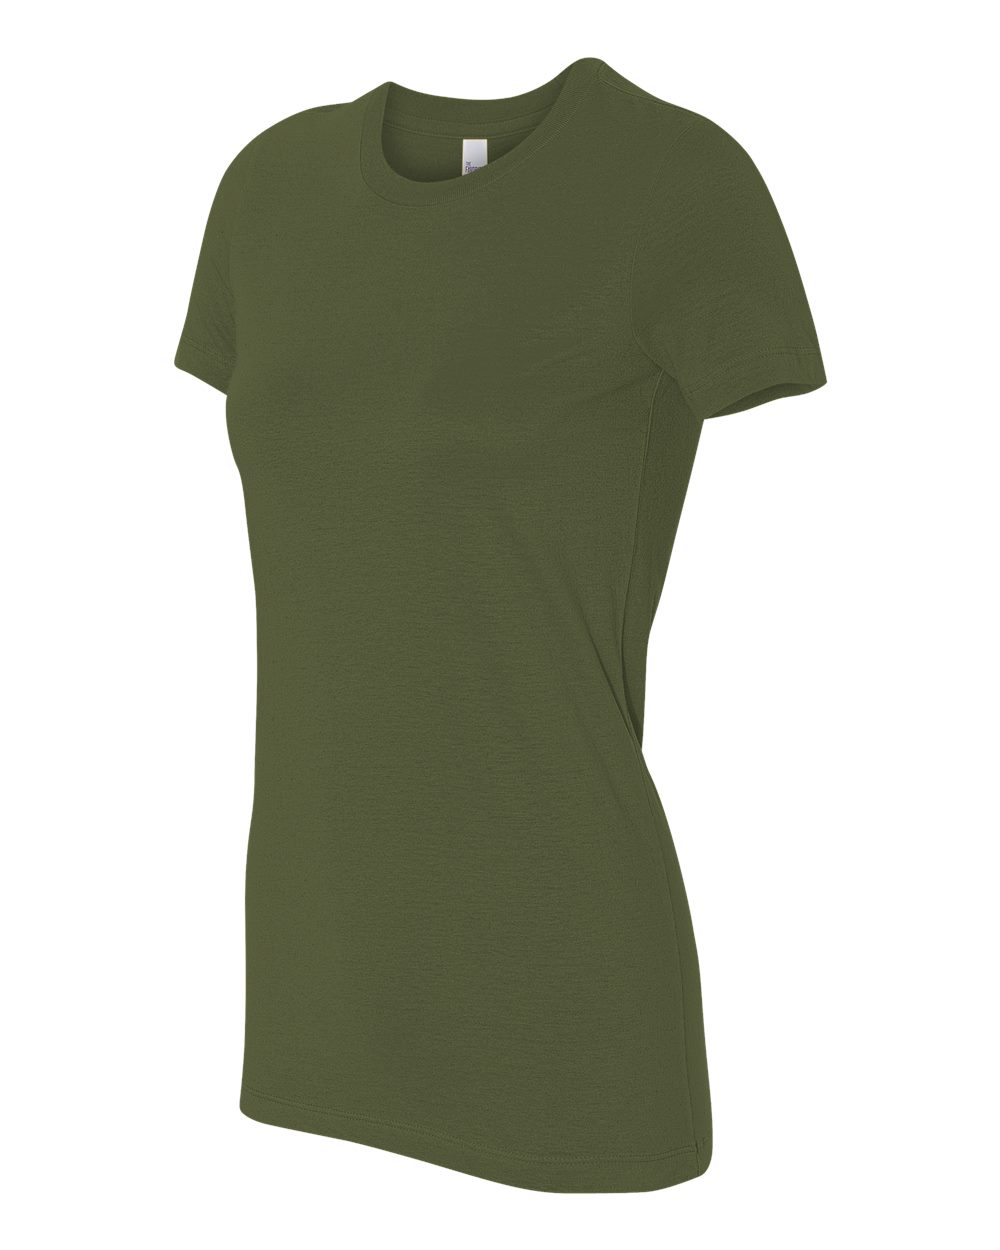 Bella-Canvas-Womens-The-Favorite-T-Shirt-6004-Size-S-2XL thumbnail 116